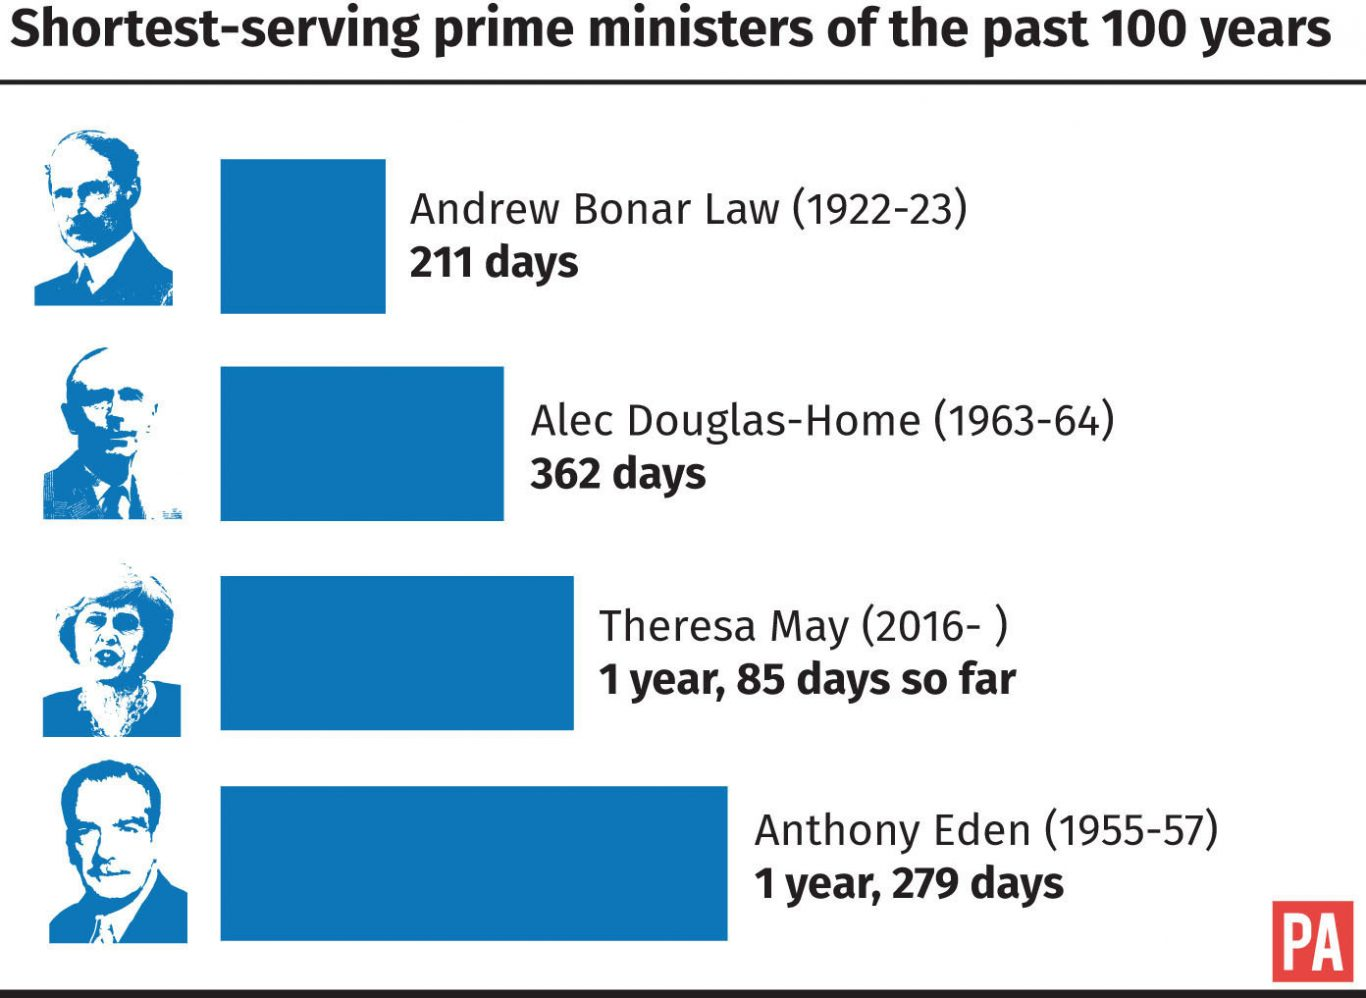 Shortest-servings prime ministers of the past 100 years.